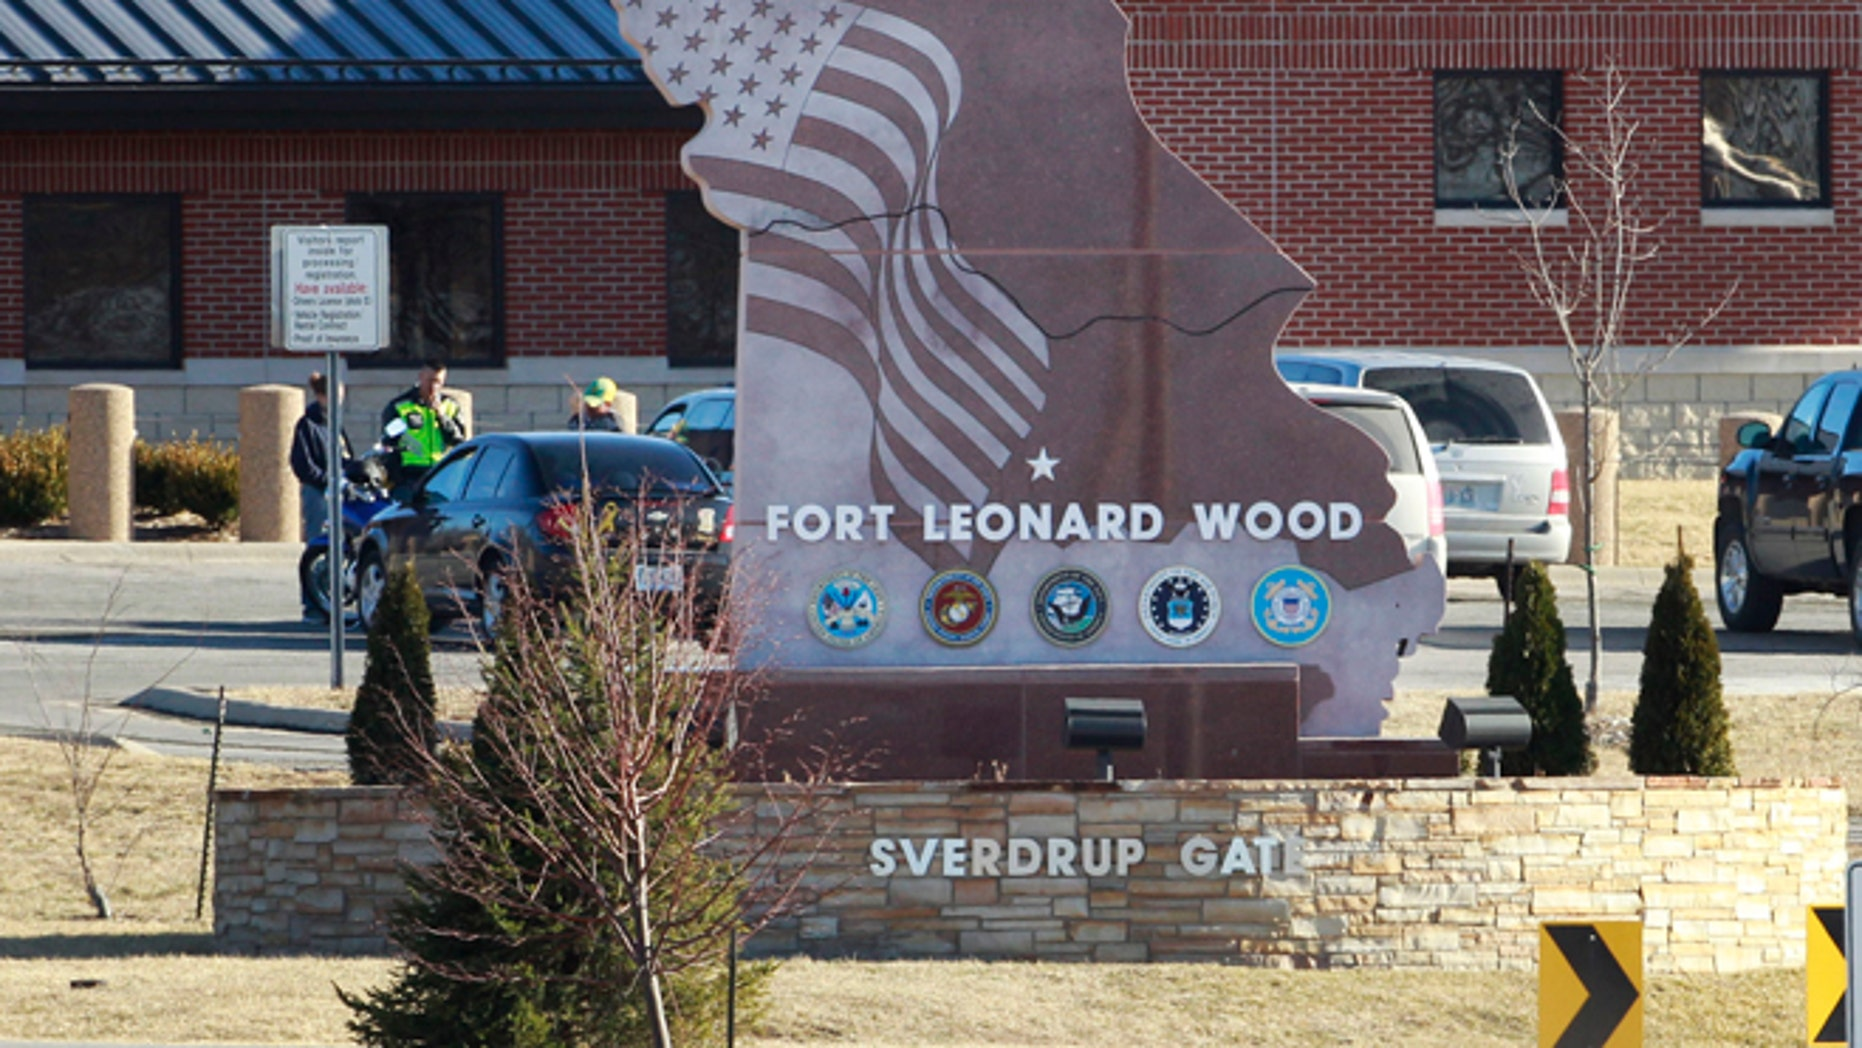 Feb, 18, 2011: In this file photo a vehicle drives out of the Sverdrup Gate of Fort Leonard Wood near Rolla, Mo. (AP)